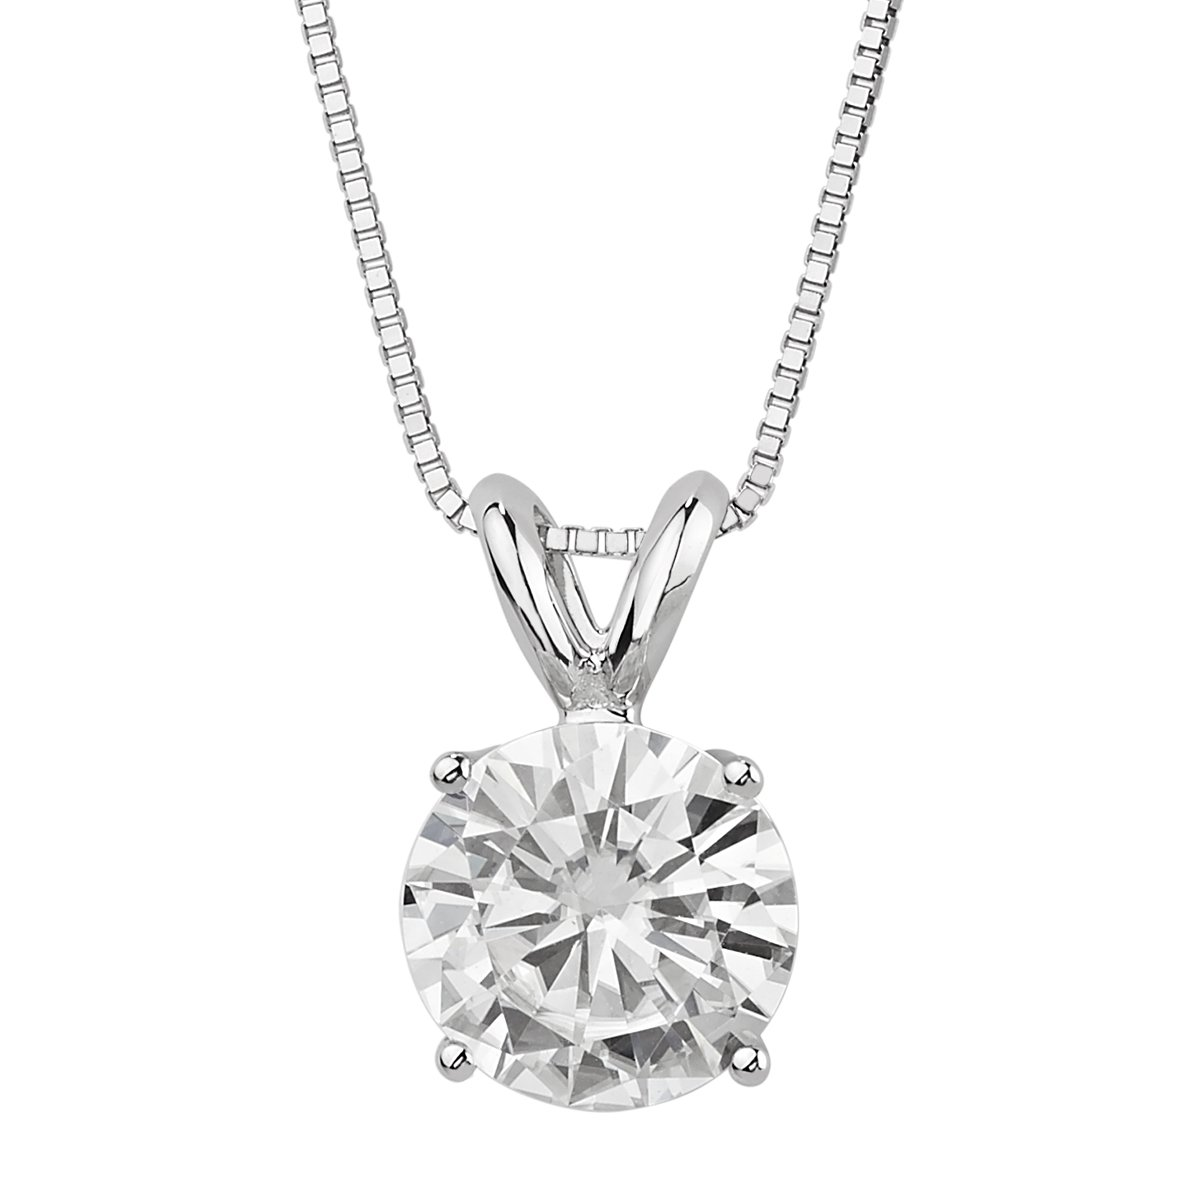 14k White Gold 6.5mm Round Forever Brilliant Moissanite Necklace 1.0ct DEW By Charles & Colvard